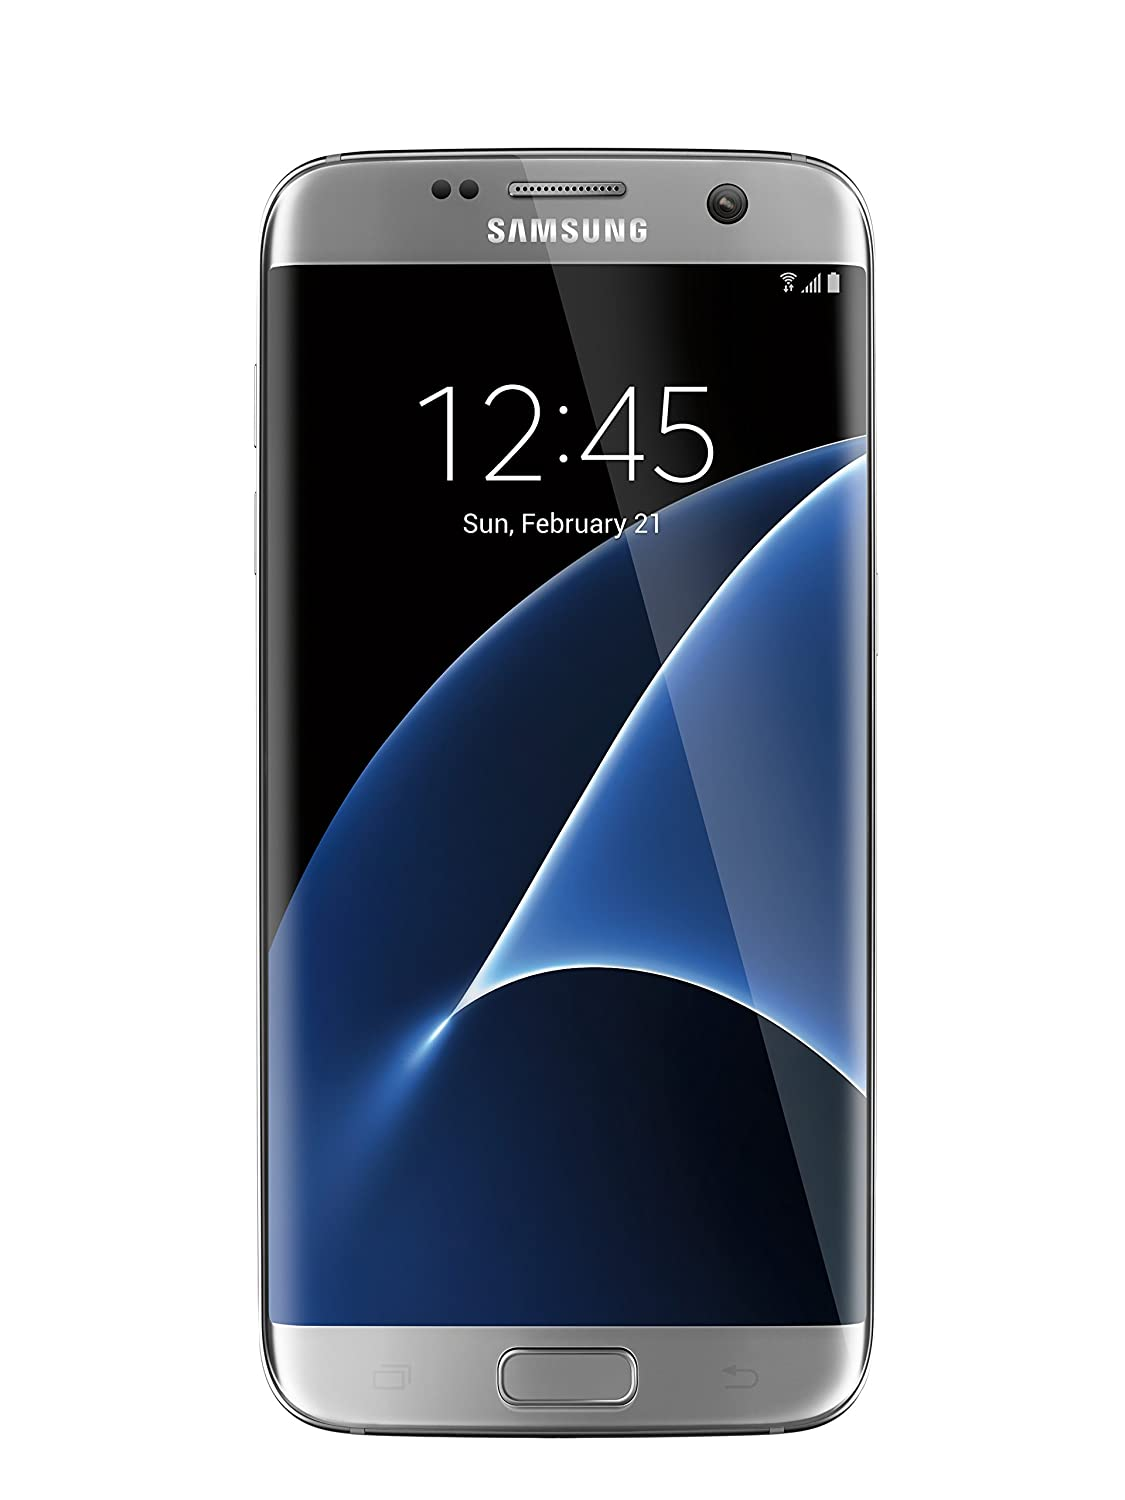 Samsung Galaxy S7 Edge G935F Unlocked Phone - Retail Packaging - Titanium Silver (International Version)